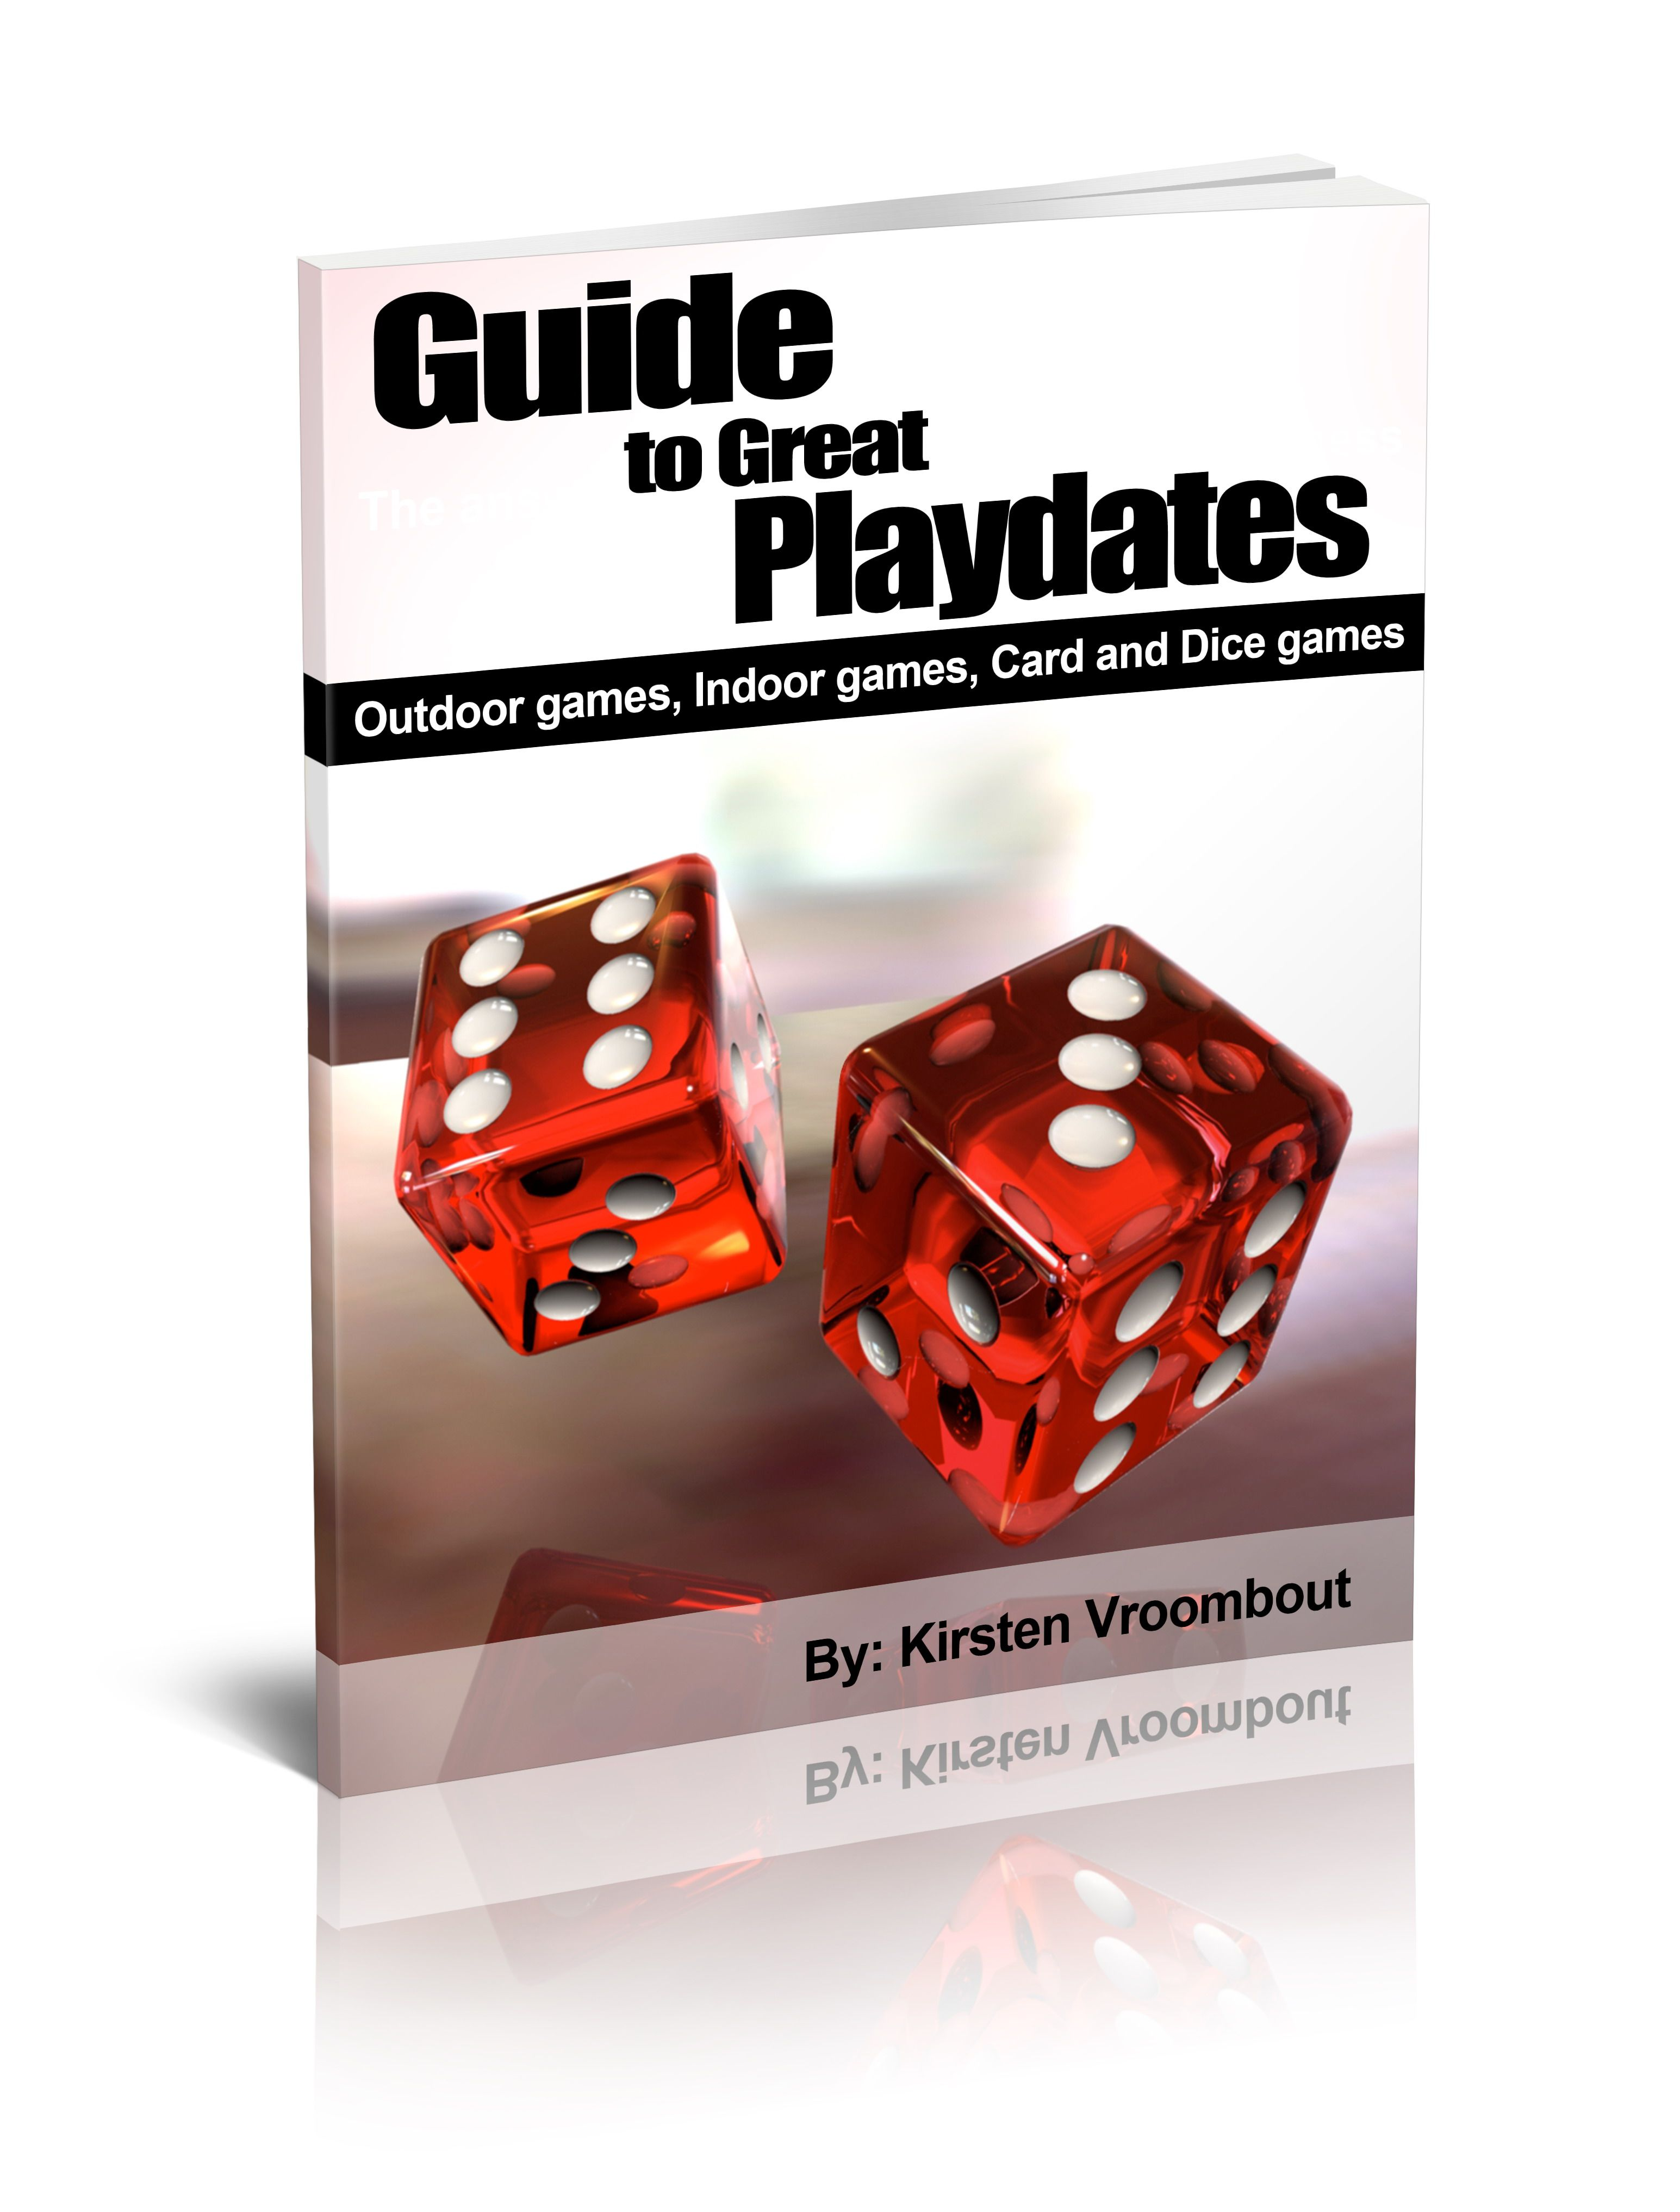 Outdoor games, indoor games, card and dice games for kids